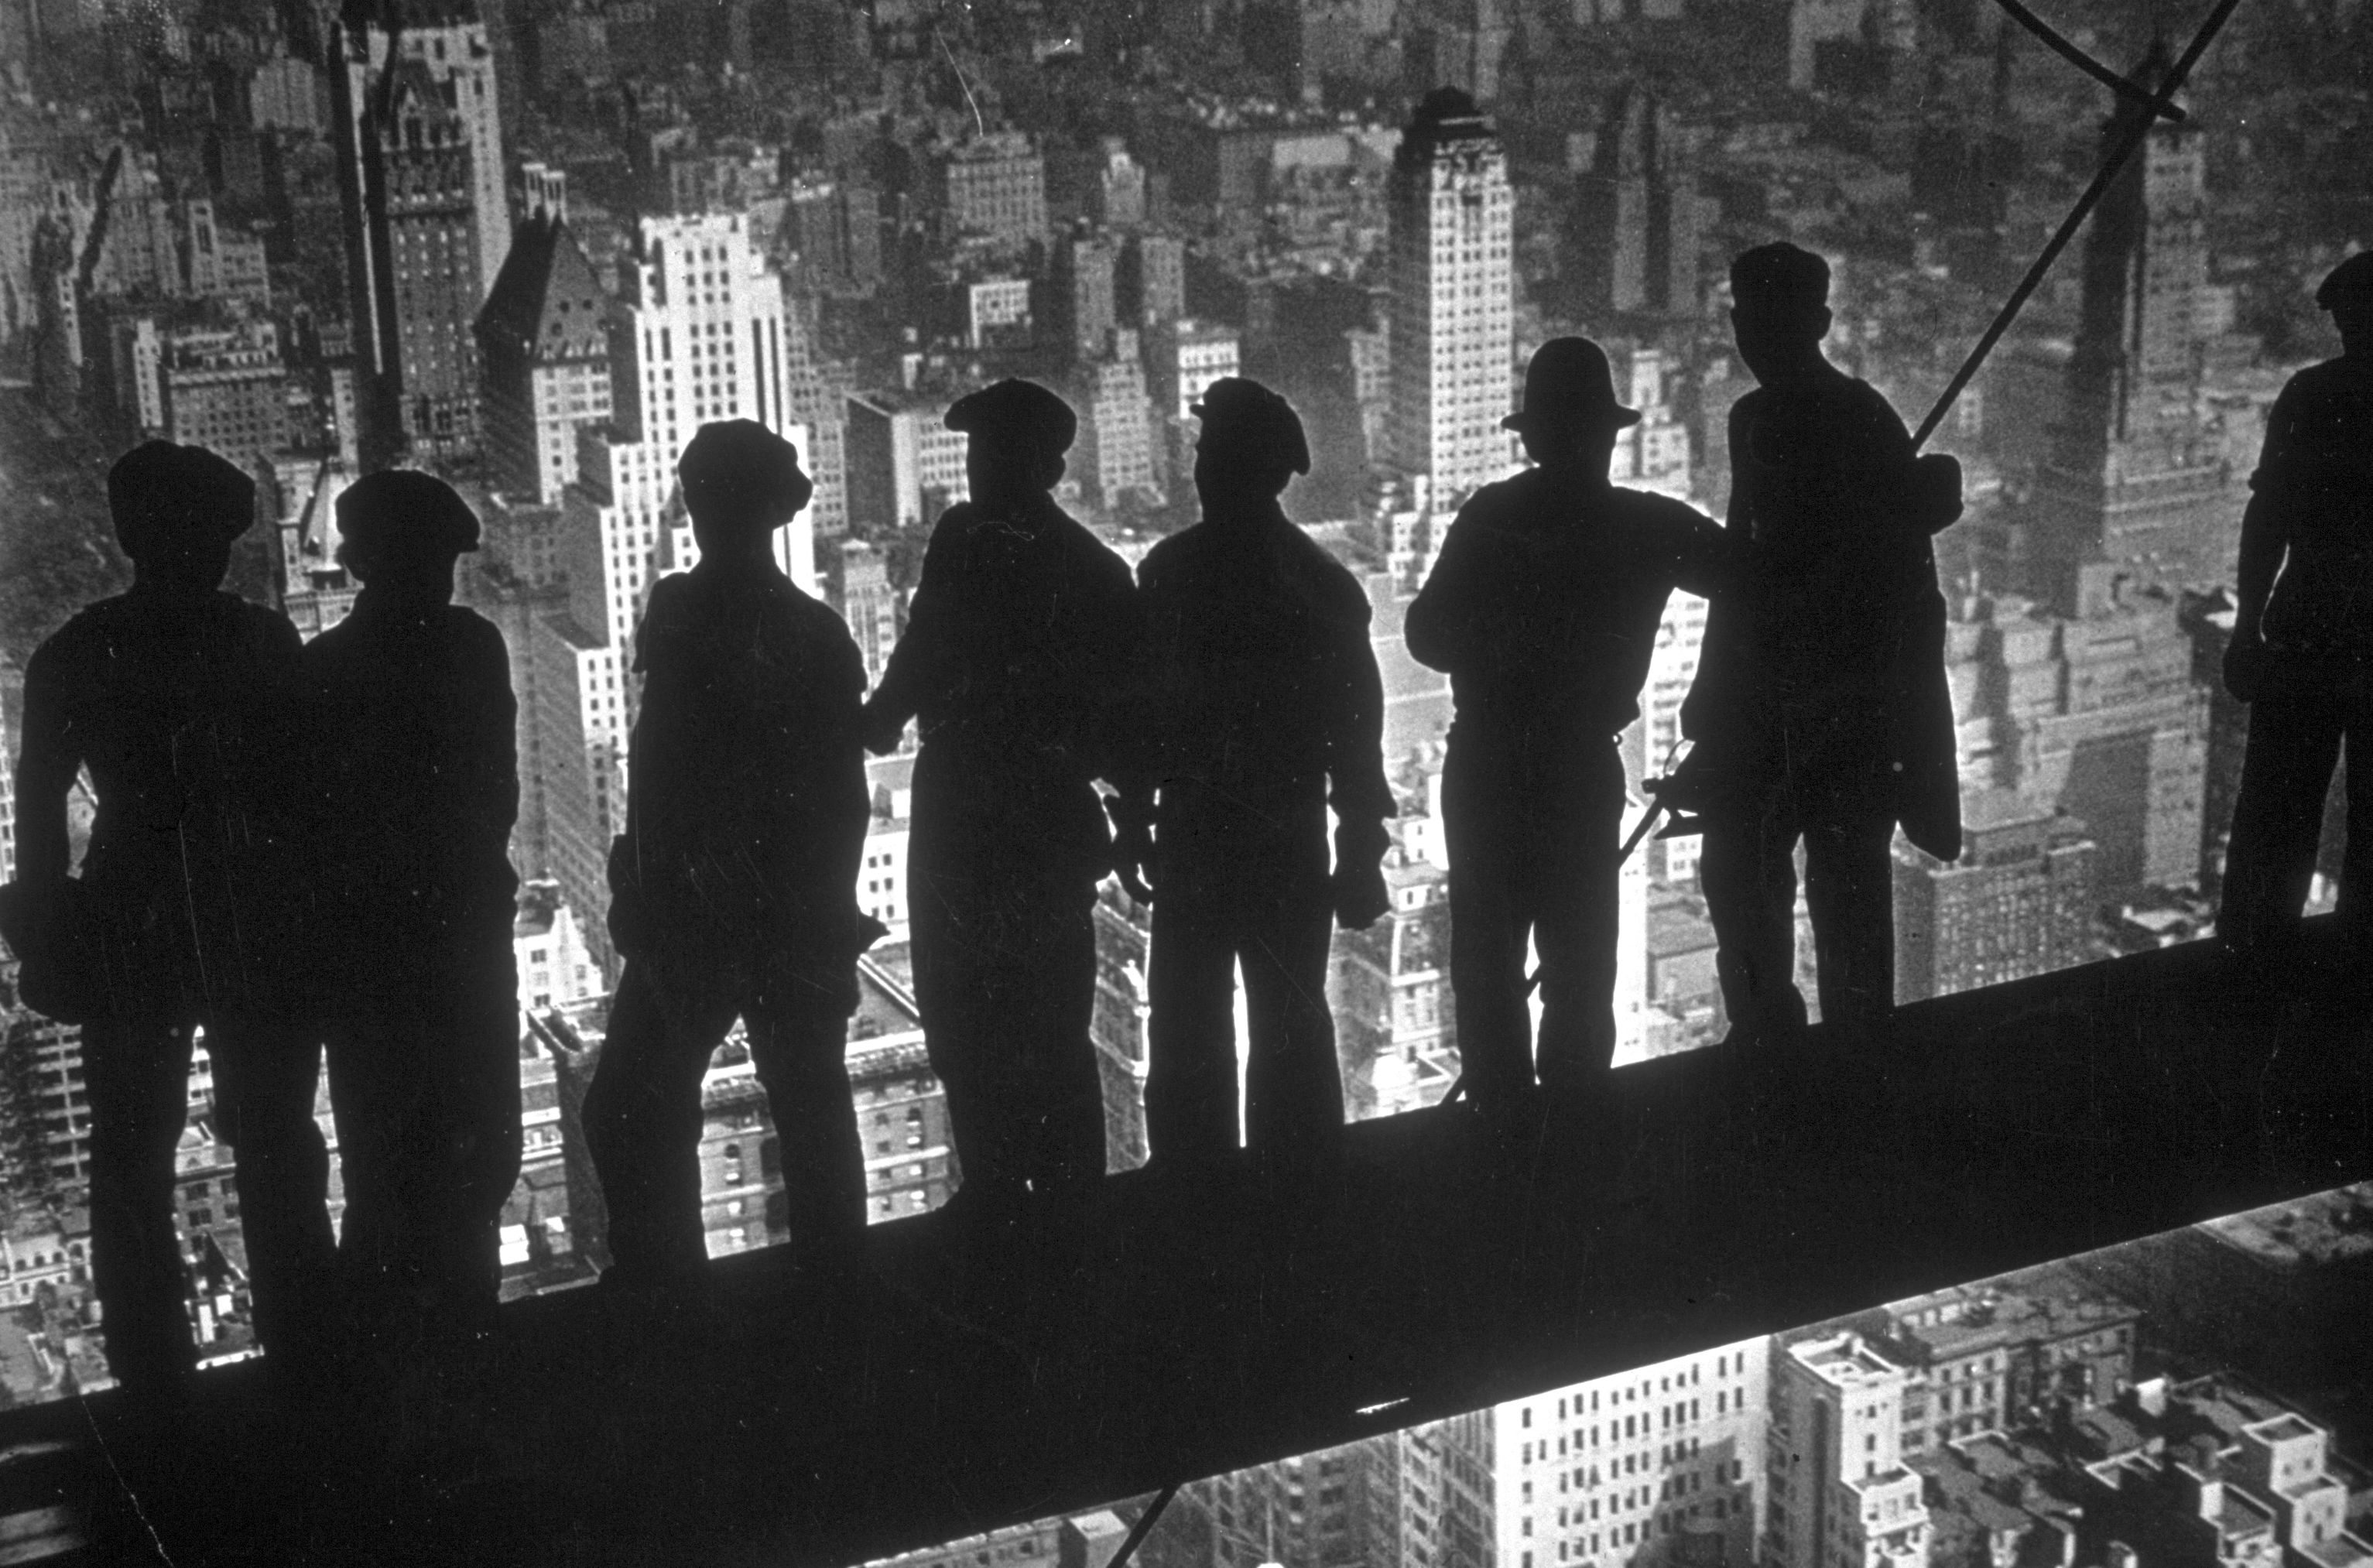 A group of steel workers standing on scaffolding